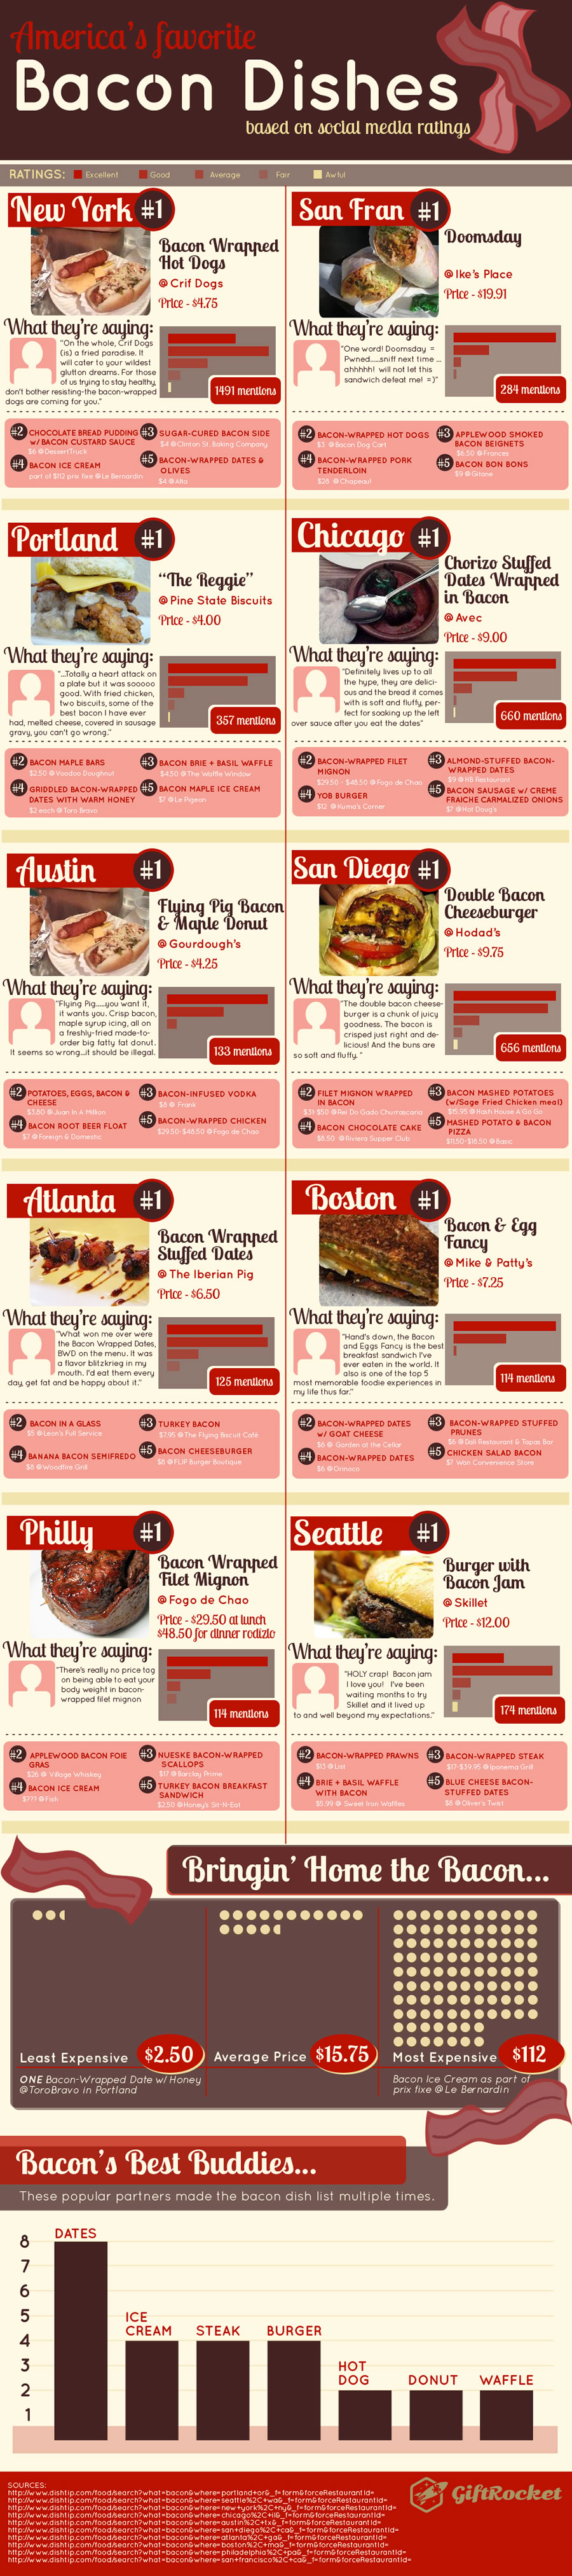 bacon-dishes-infographic-full